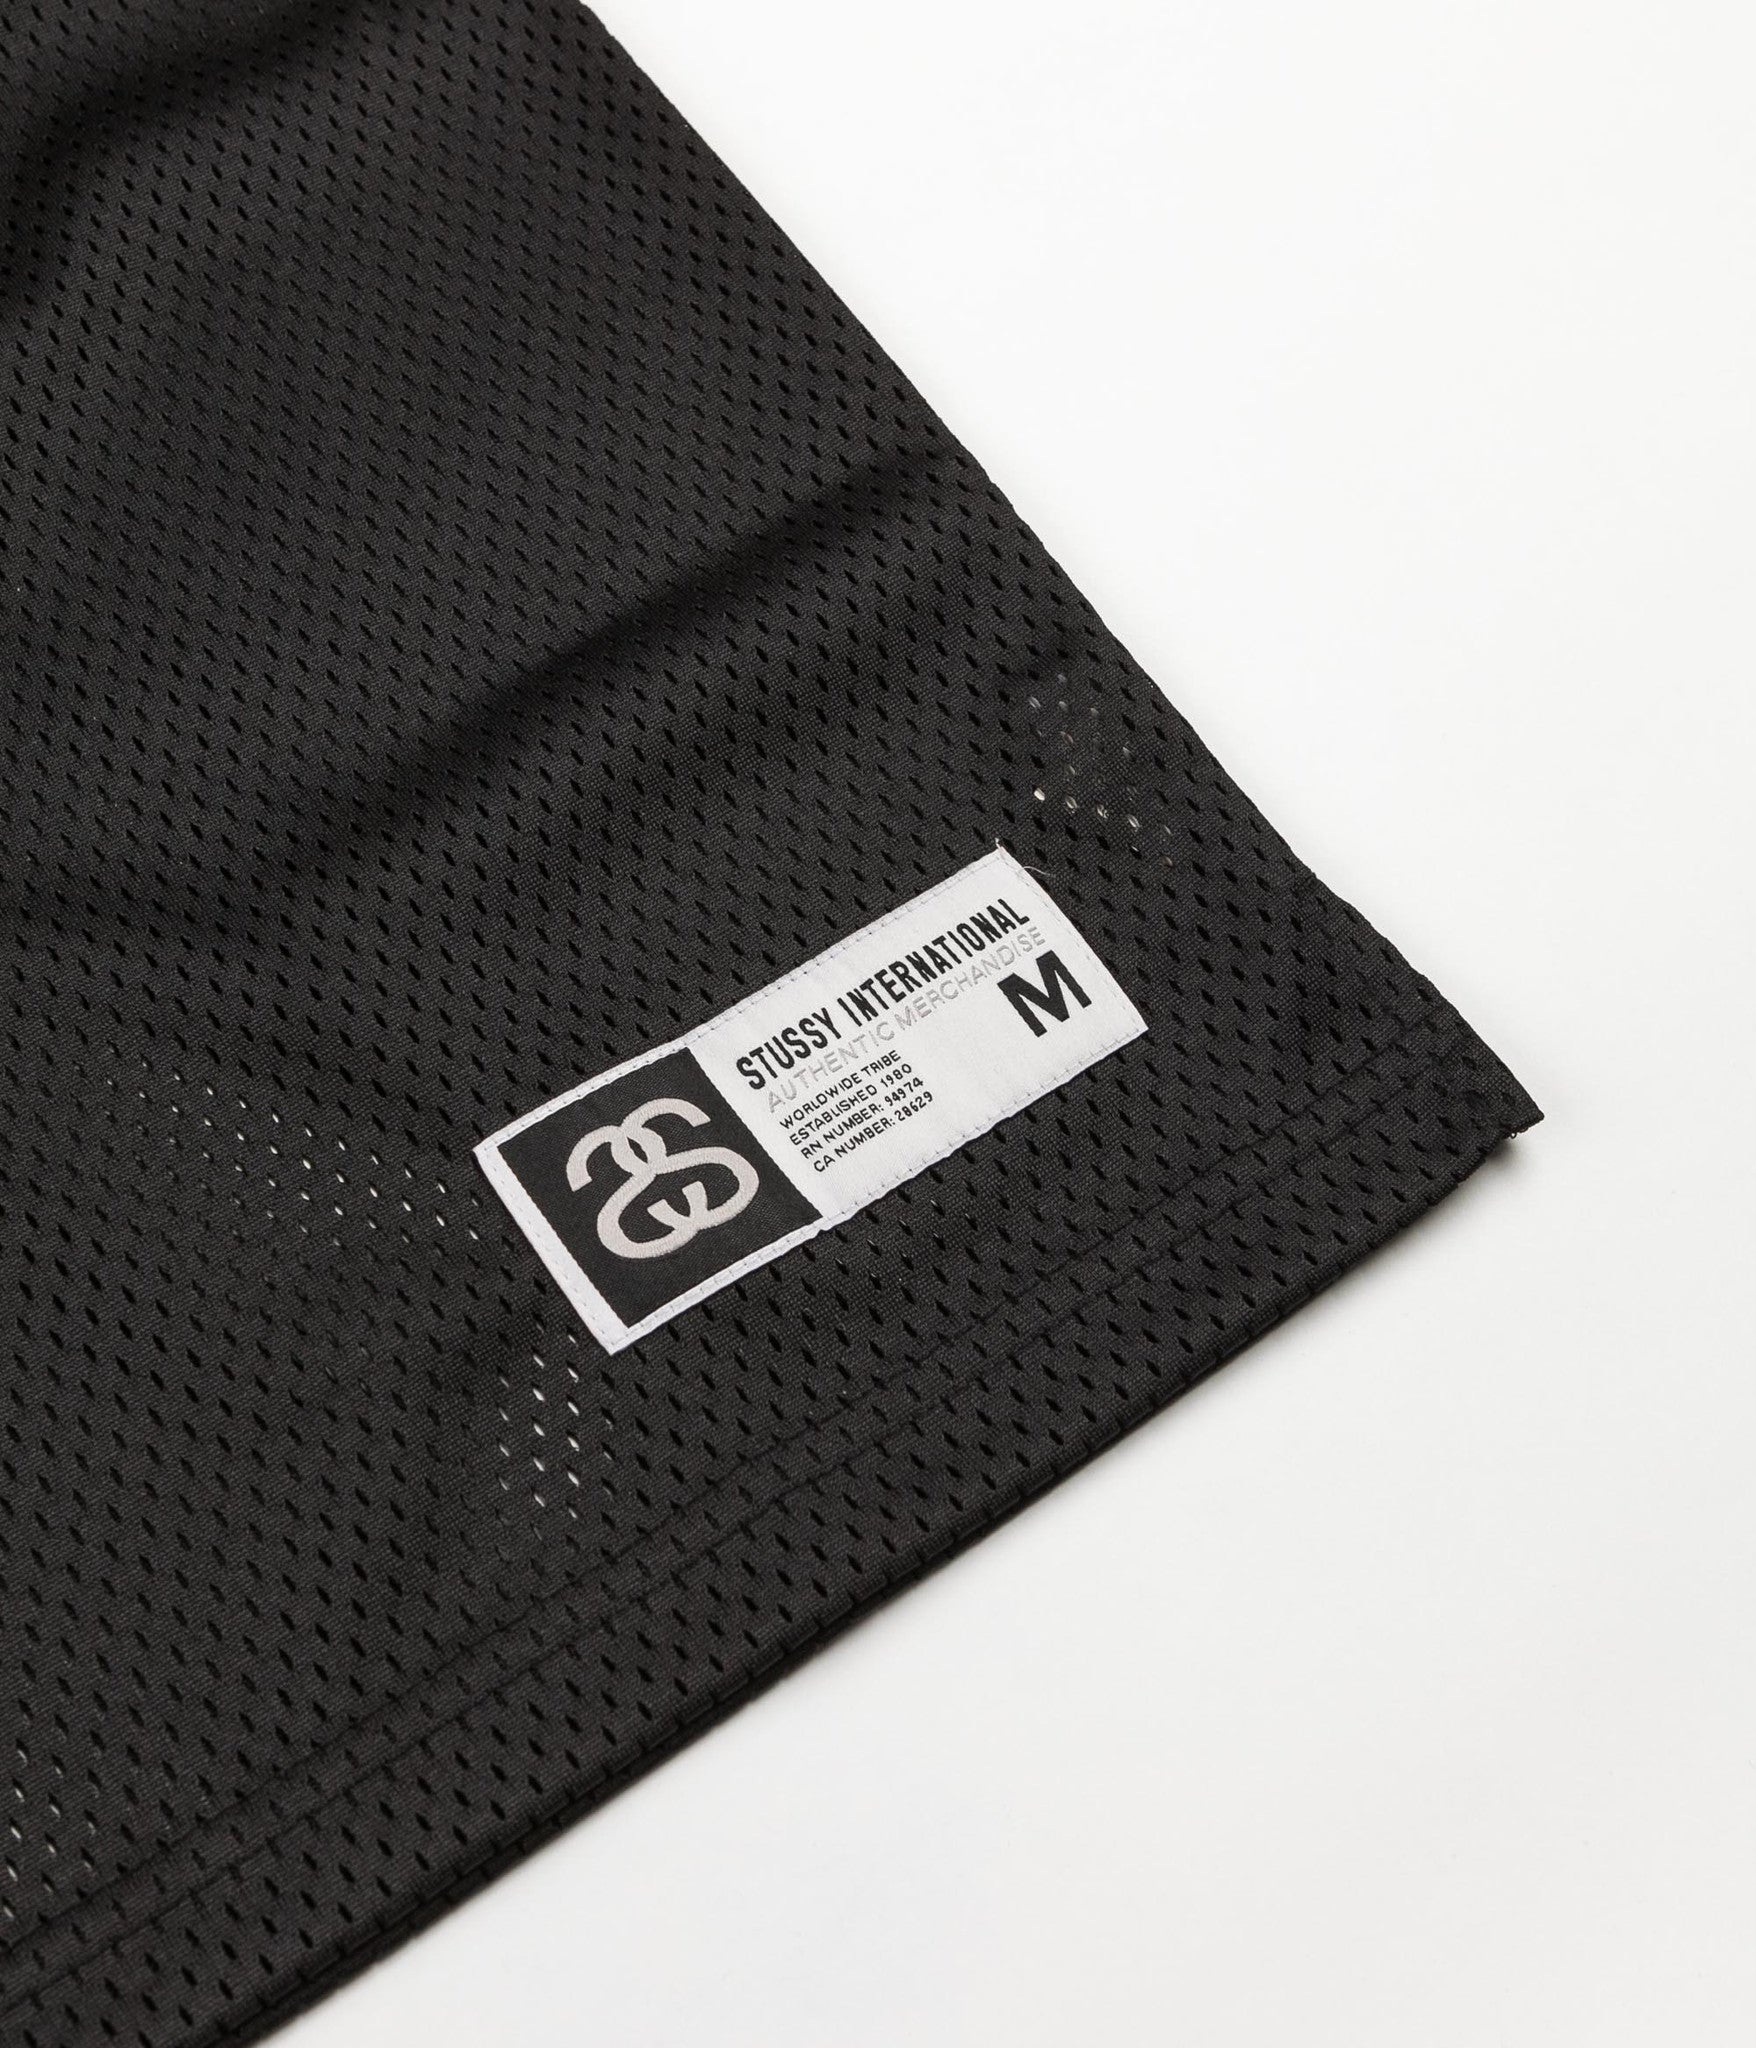 Stussy 35 Football Mesh Short Sleeve Jersey - Black